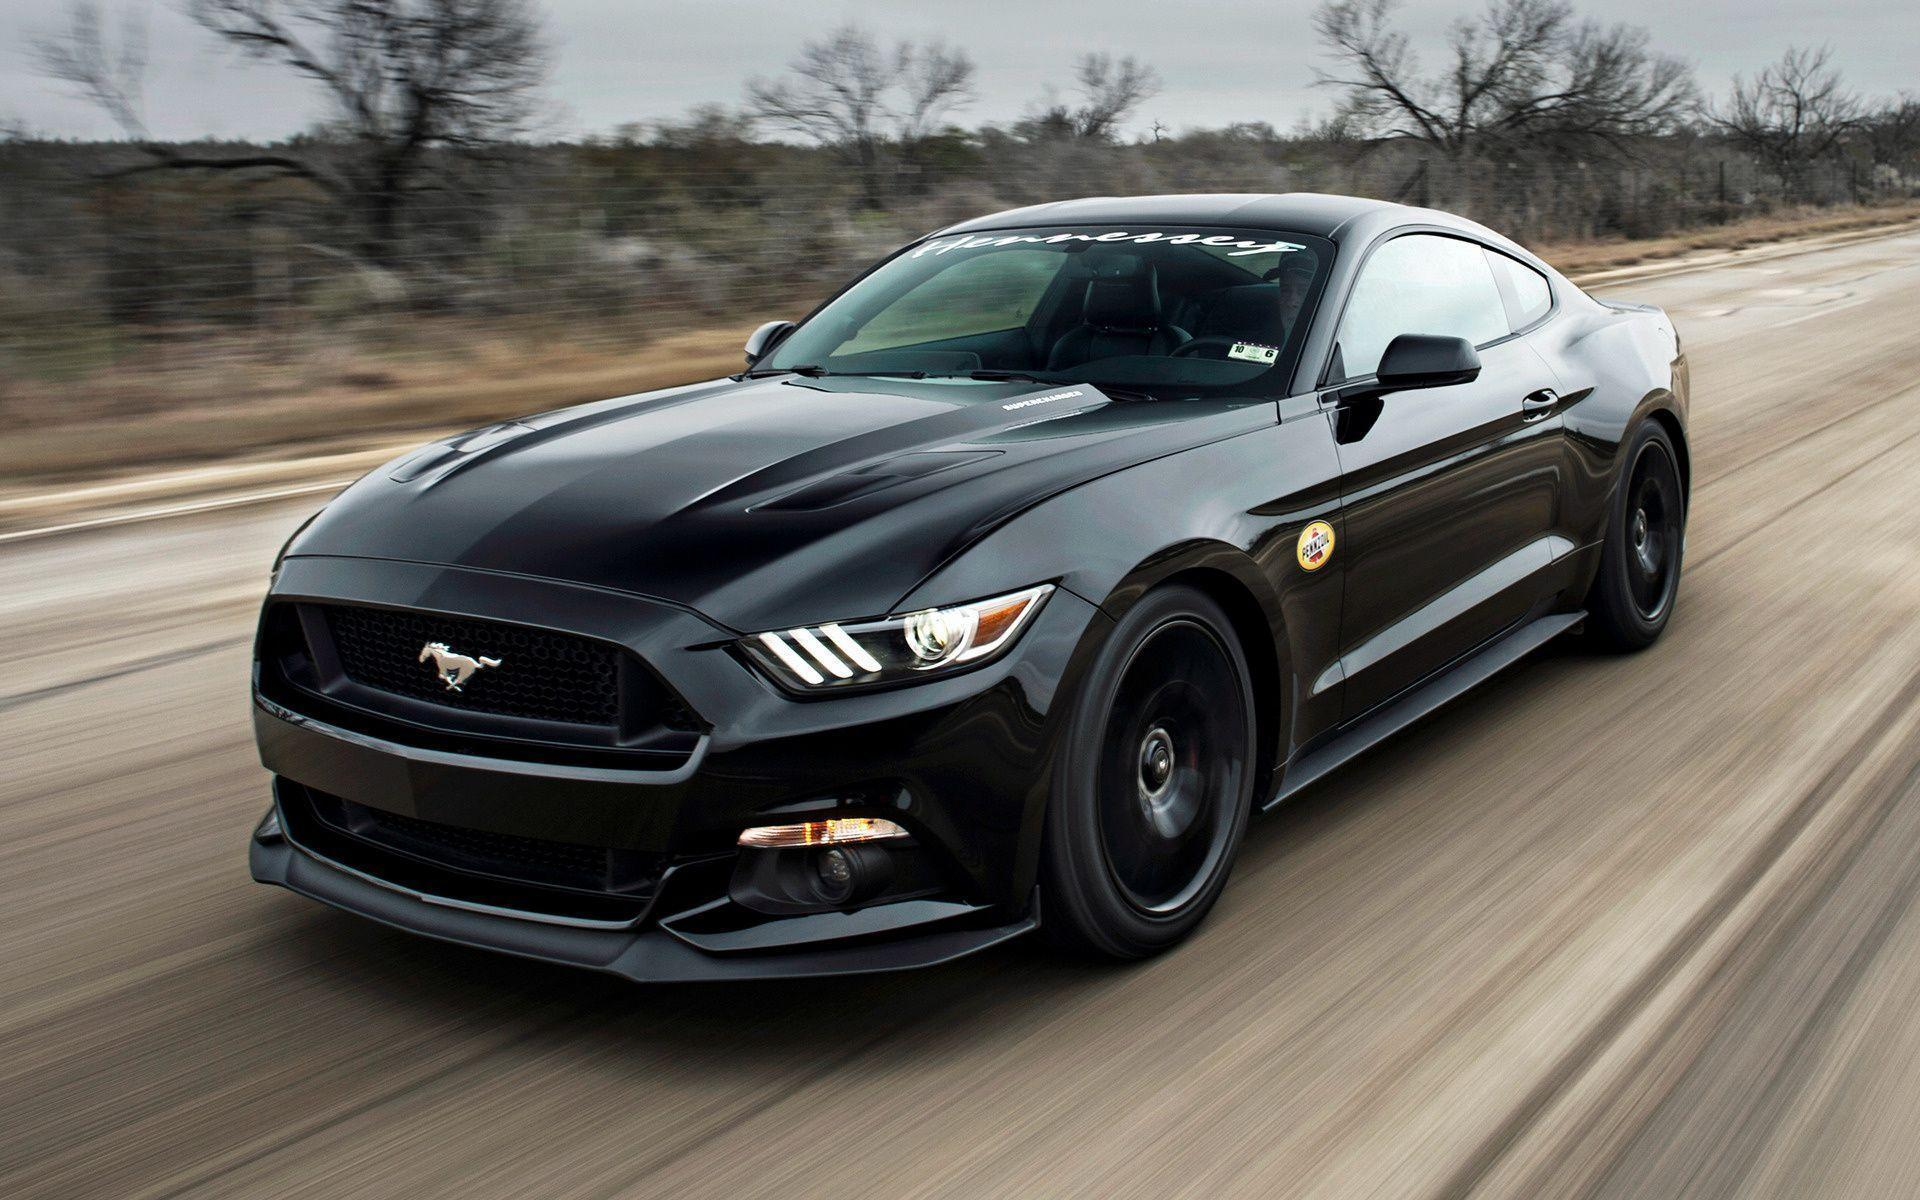 2018 Ford Mustang Cobra Upcoming Cars 2020